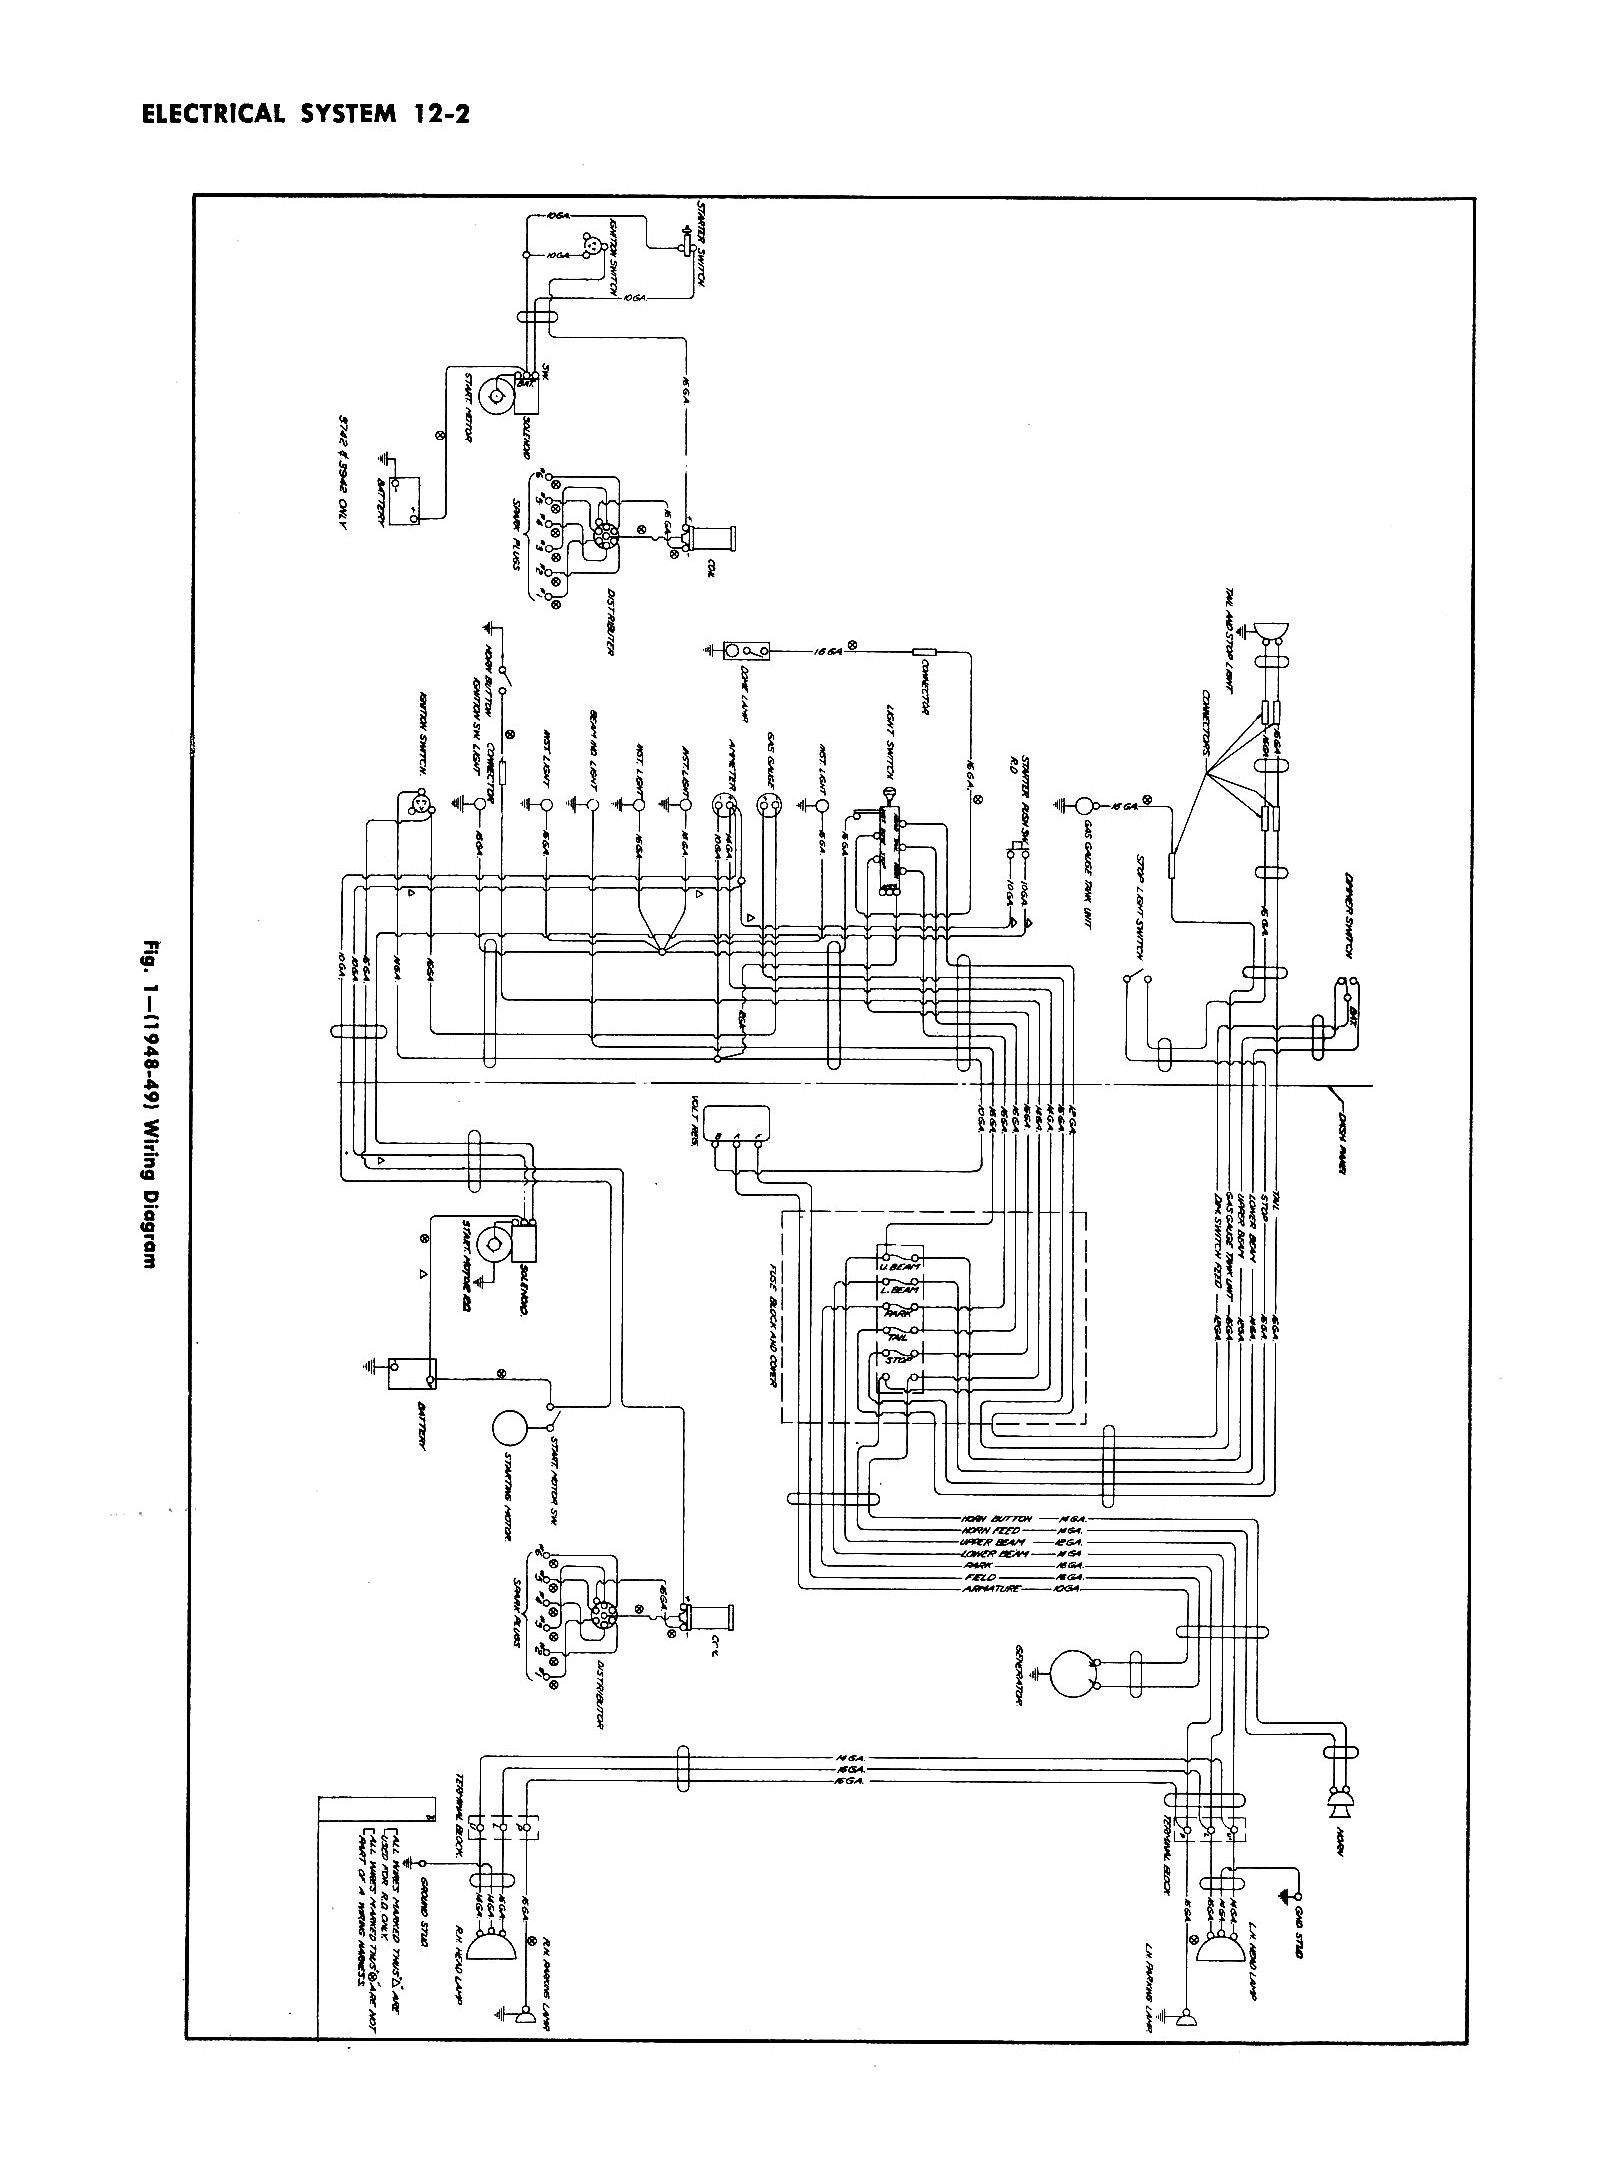 1949 Chevy Pickup Wiring Diagram Real Wire Cub Cadet 13aq11cp712 Diagrams Rh Oldcarmanualproject Com 49 Truck 1991